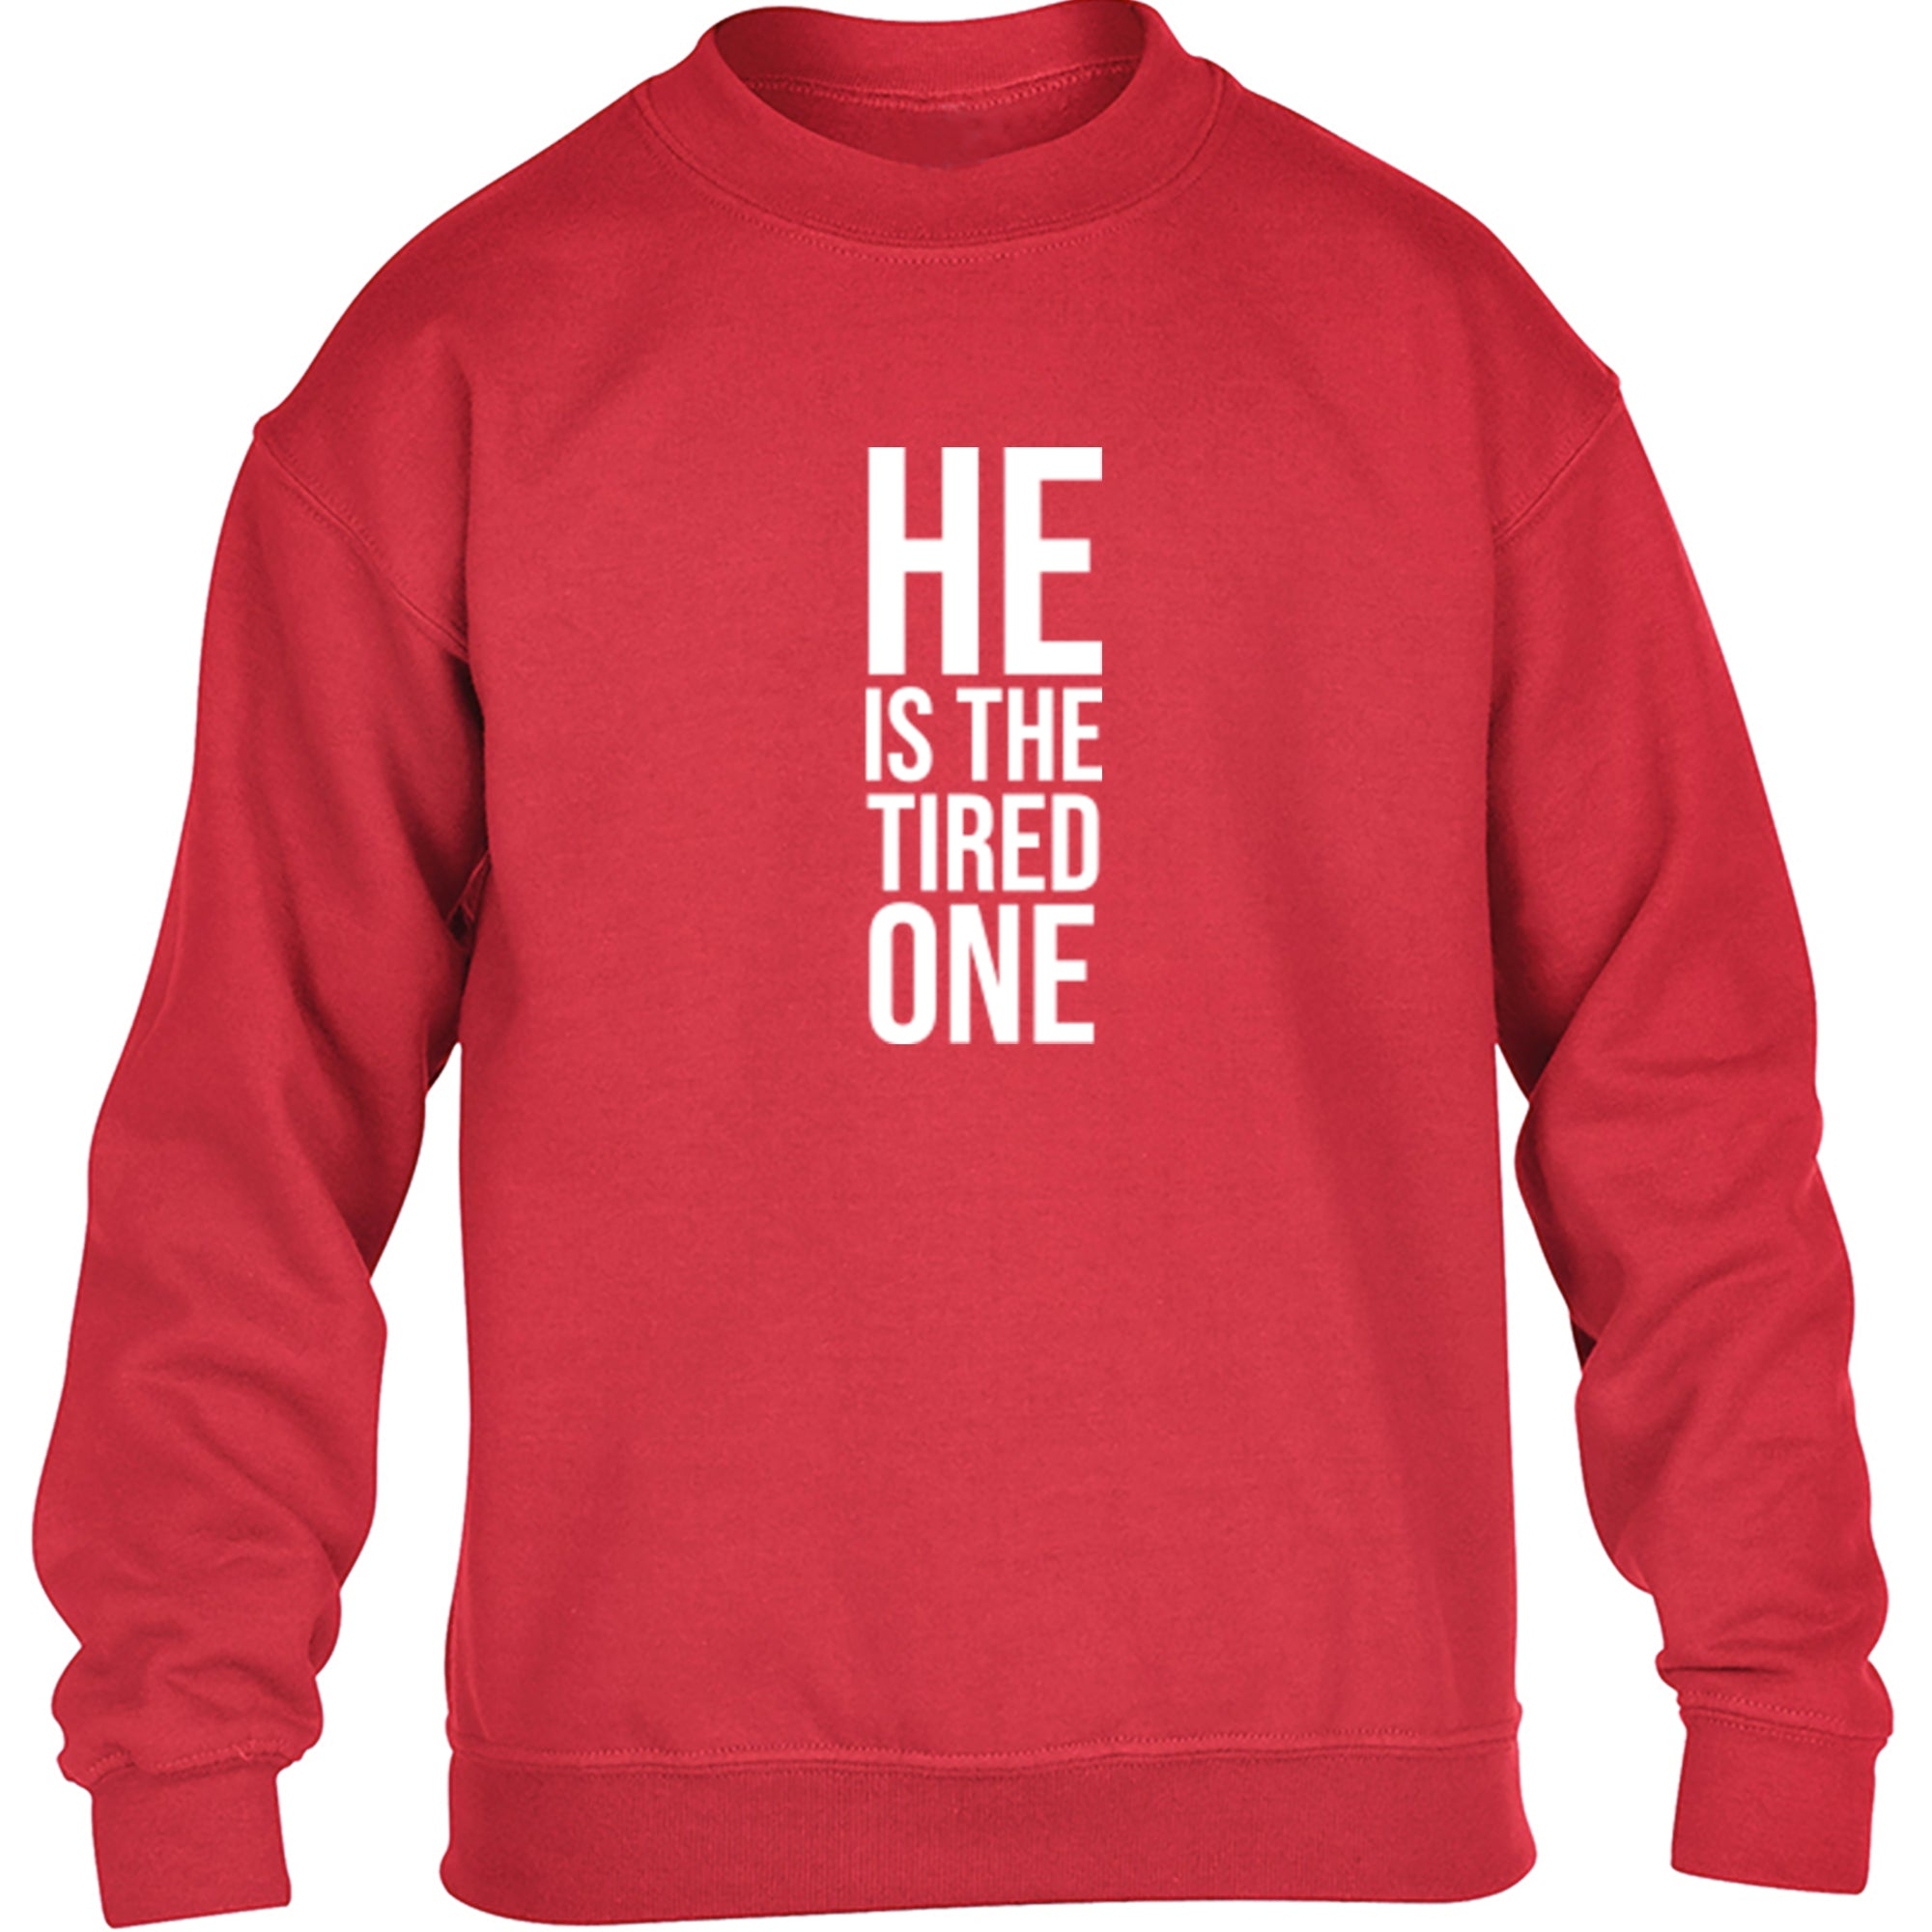 He Is The Tired One Childrens Ages 3/4-12/14 Unisex Jumper S0339 - Illustrated Identity Ltd.